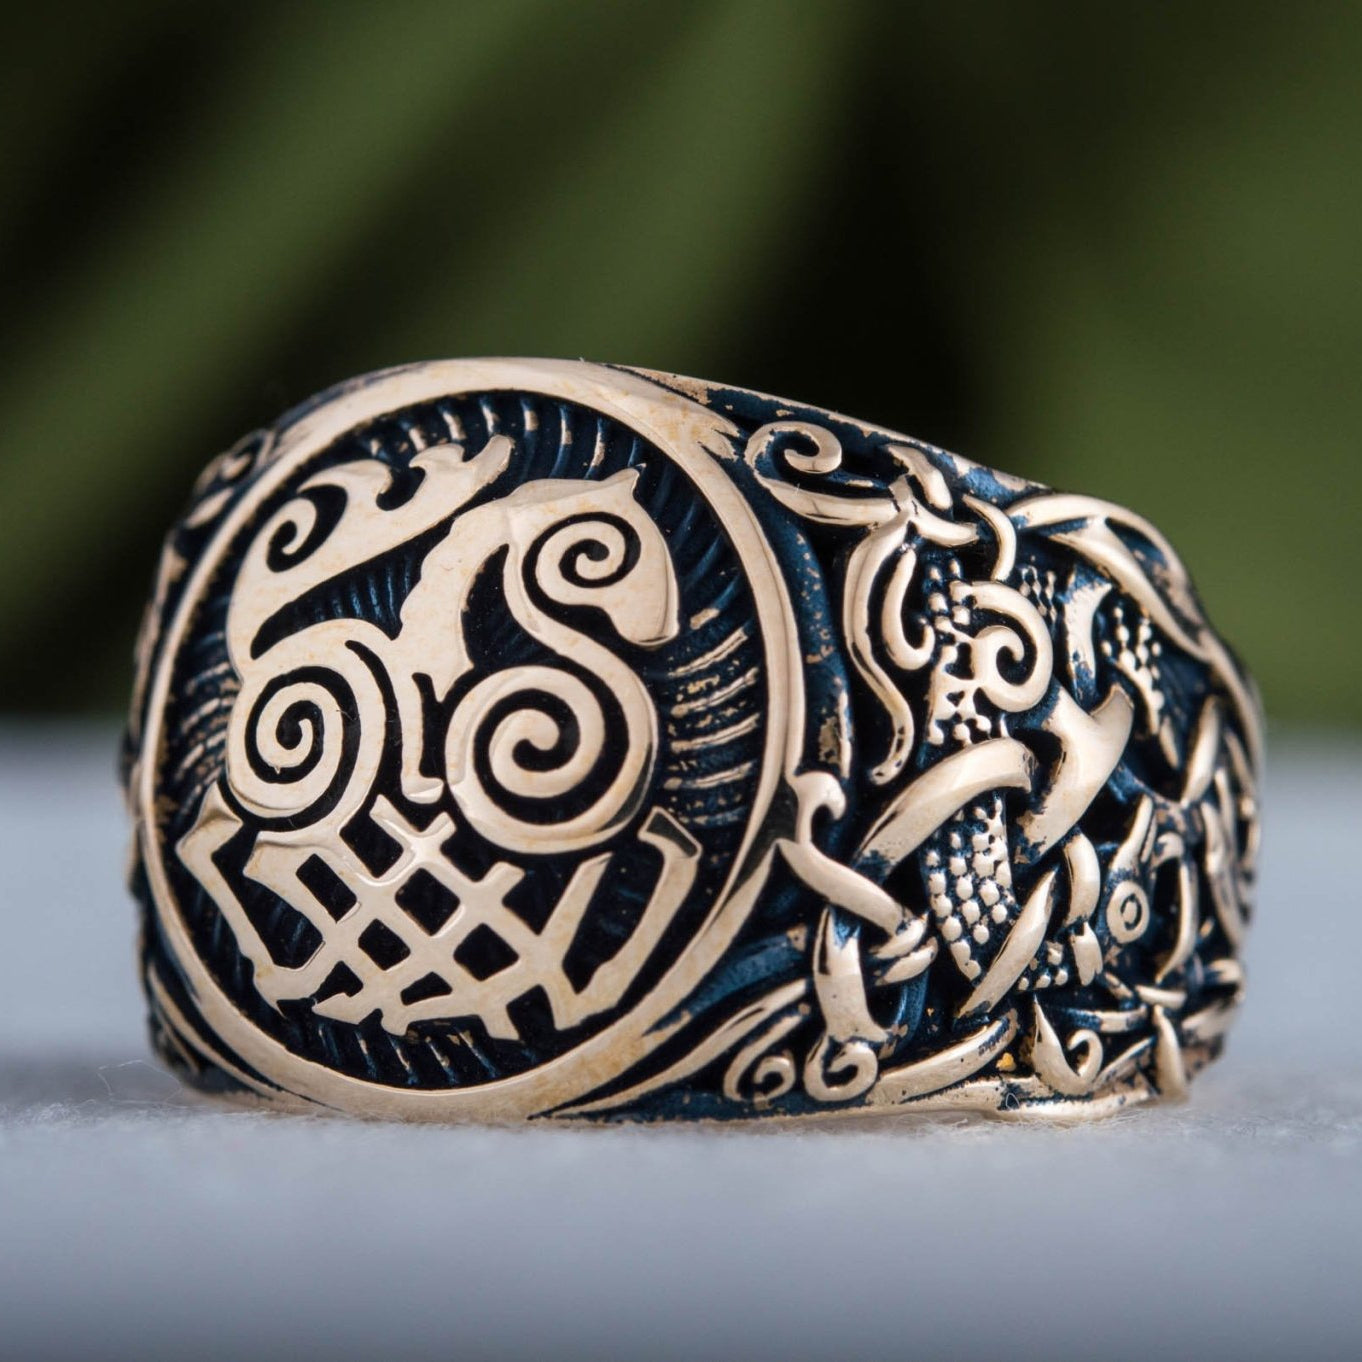 Sleipnir Ring with Mammen Ornament Handcrafted Bronze Viking Ring